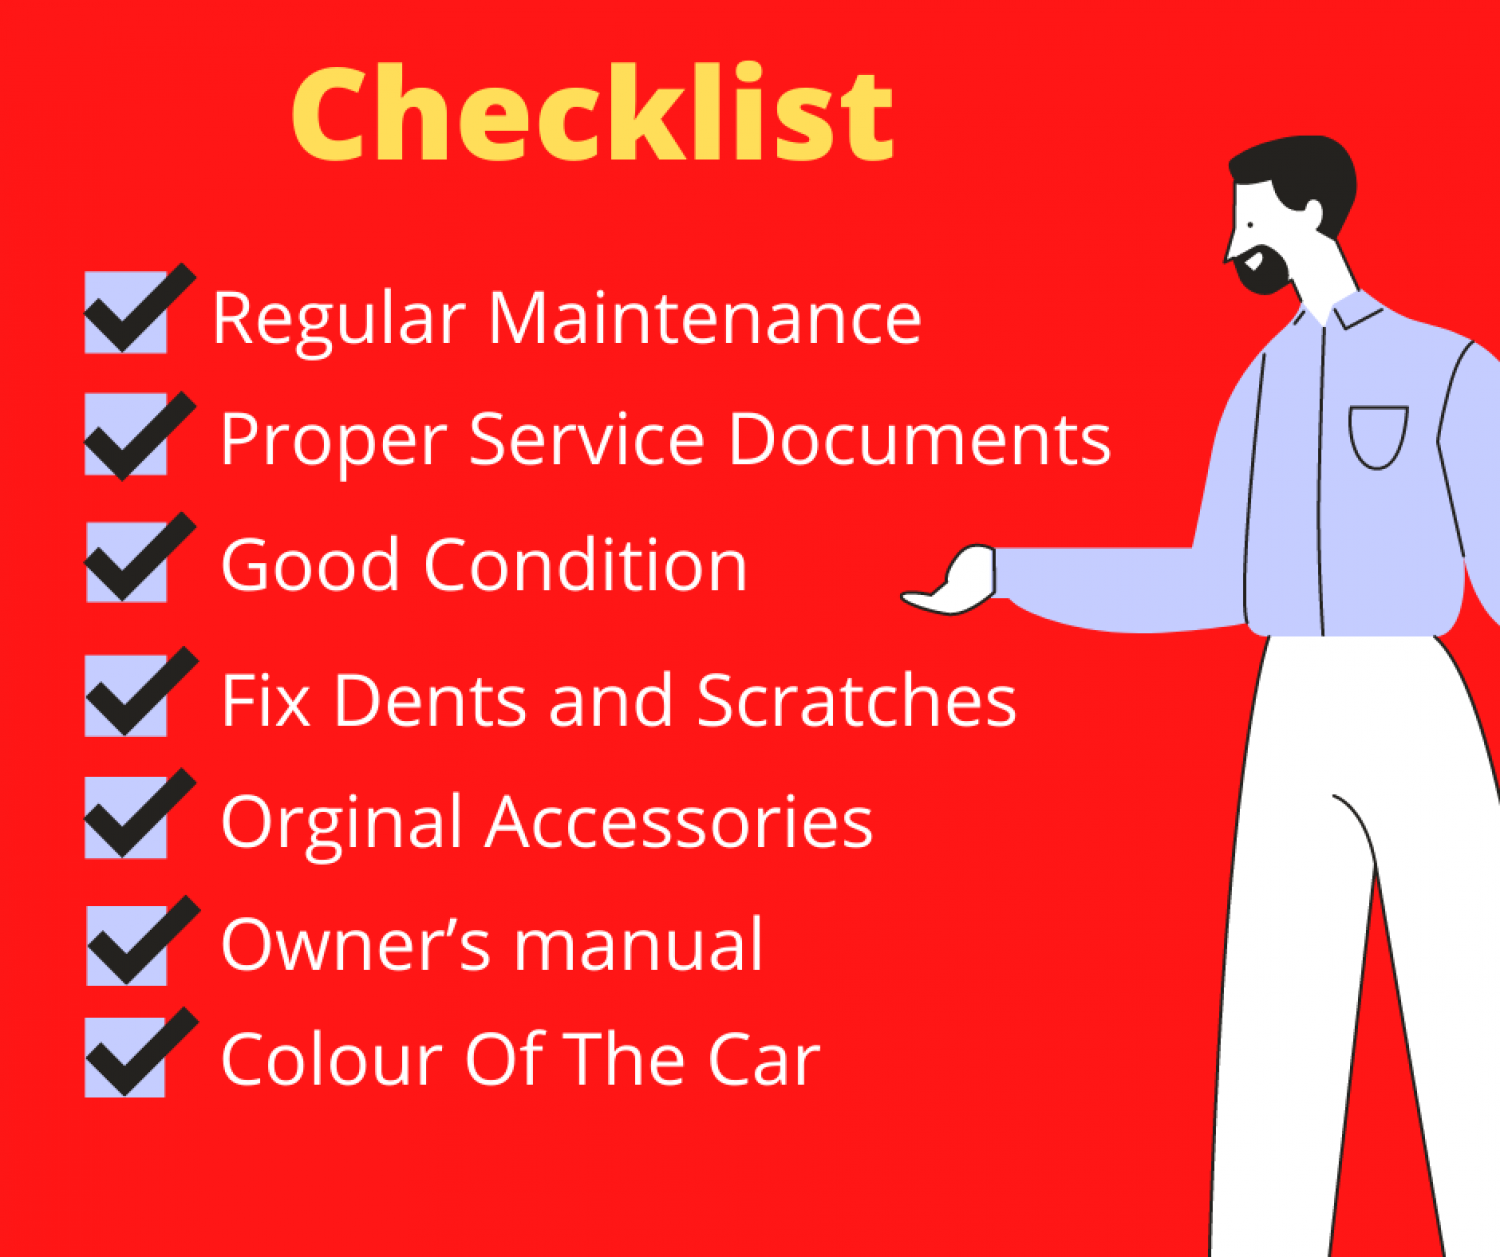 Checklist For Best Resale Value For Car Infographic